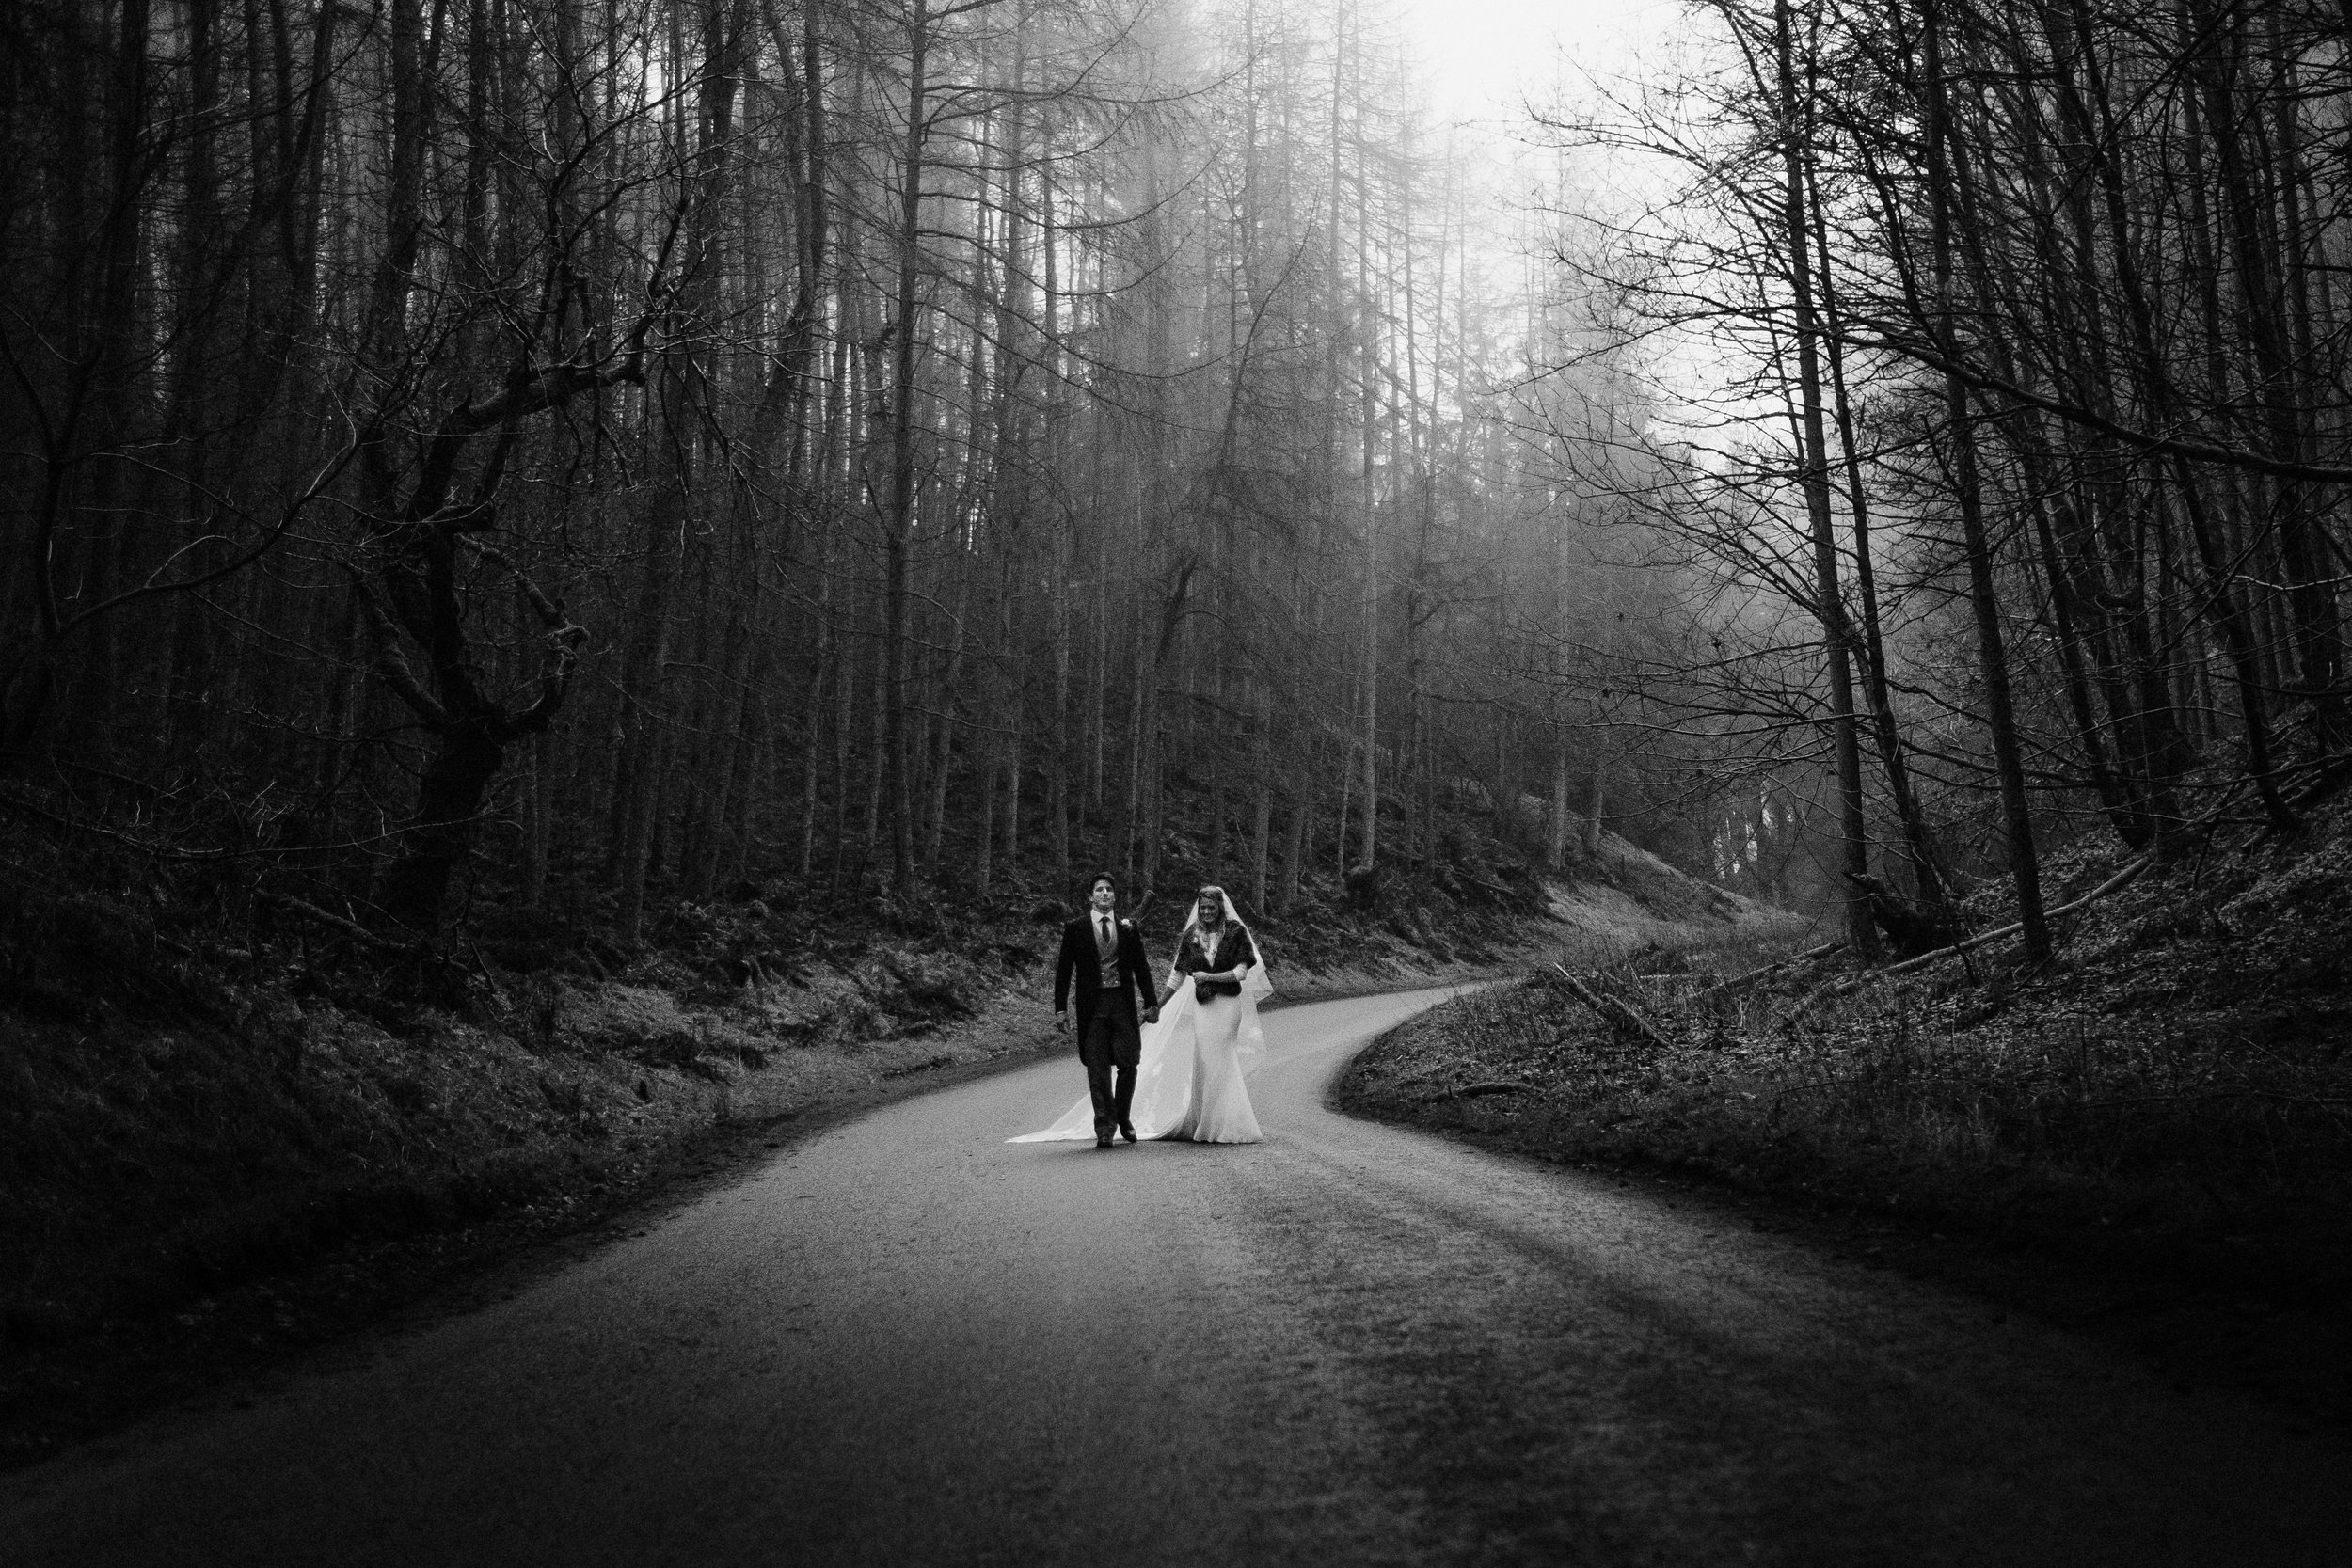 Grand forest scene of bride and groom walking